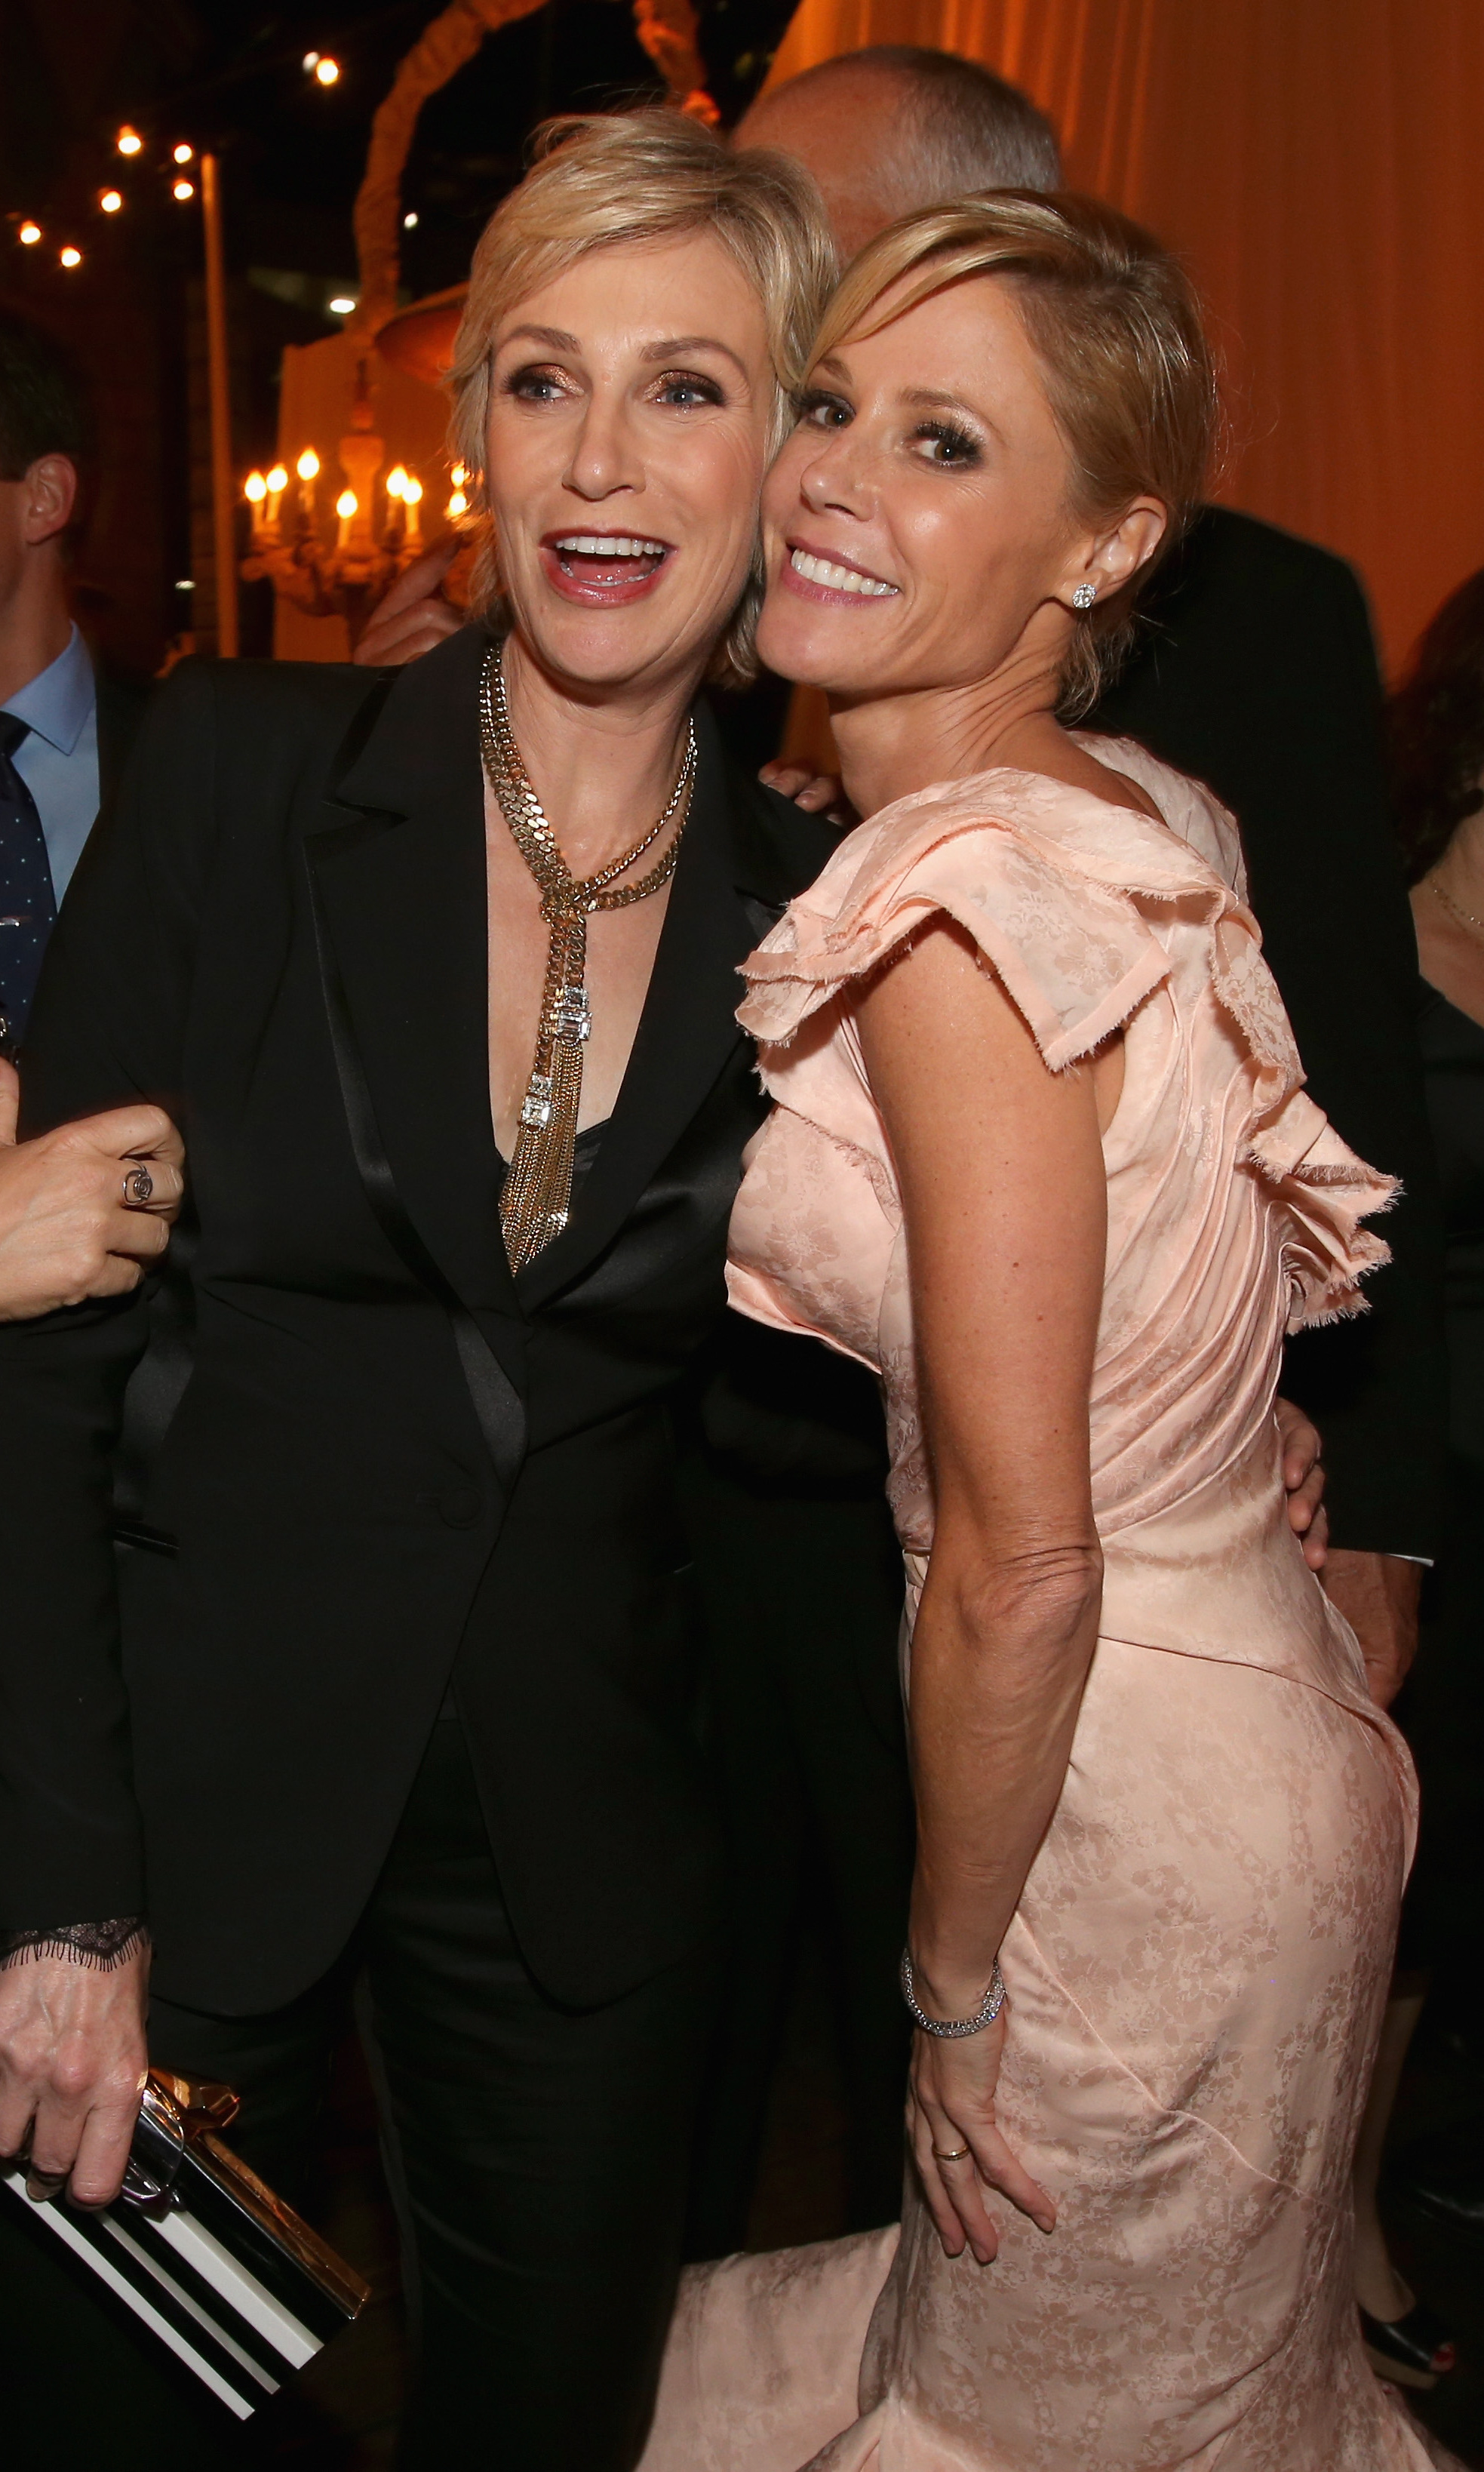 Glee actress Jane Lynch catches up with Modern Family star Julie Bowen at the post-Emmy party at Fox.